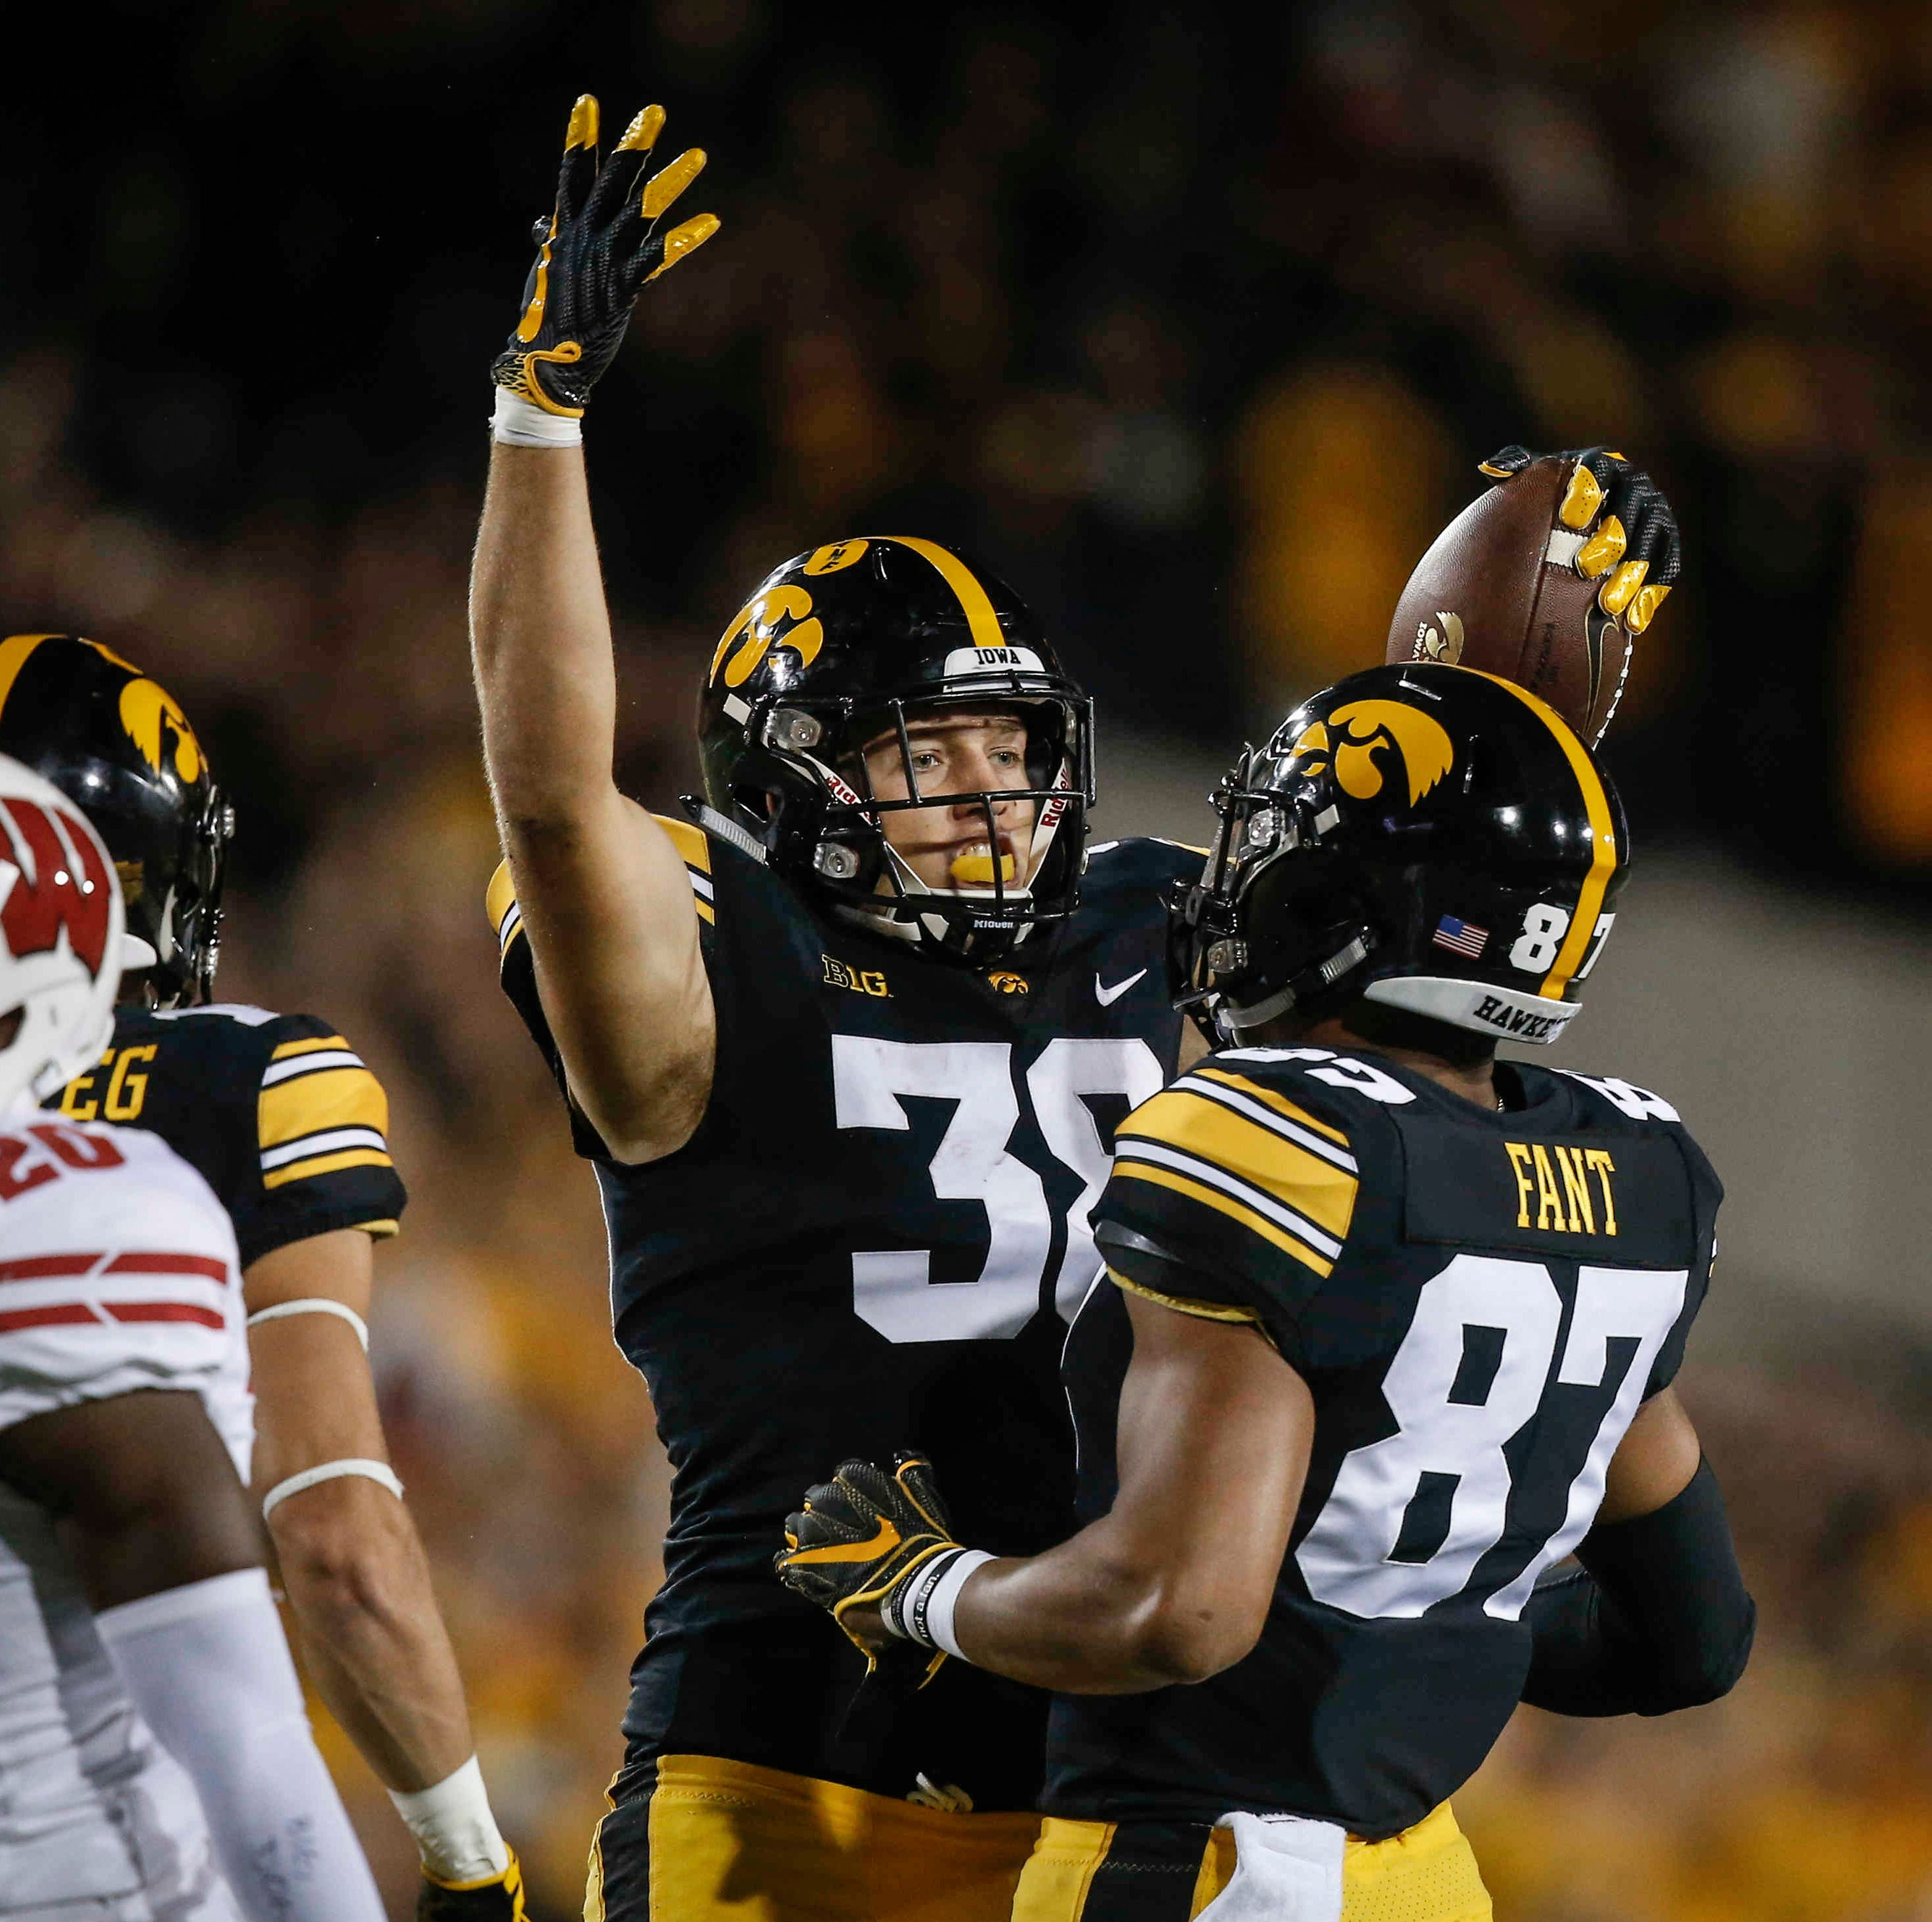 Iowa tight end T.J. Hockenson celebrates with teammate Noah Fant after pulling in a catch for a first down against Wisconsin on Saturday, Sept. 22, 2018, at Kinnick Stadium in Iowa City.